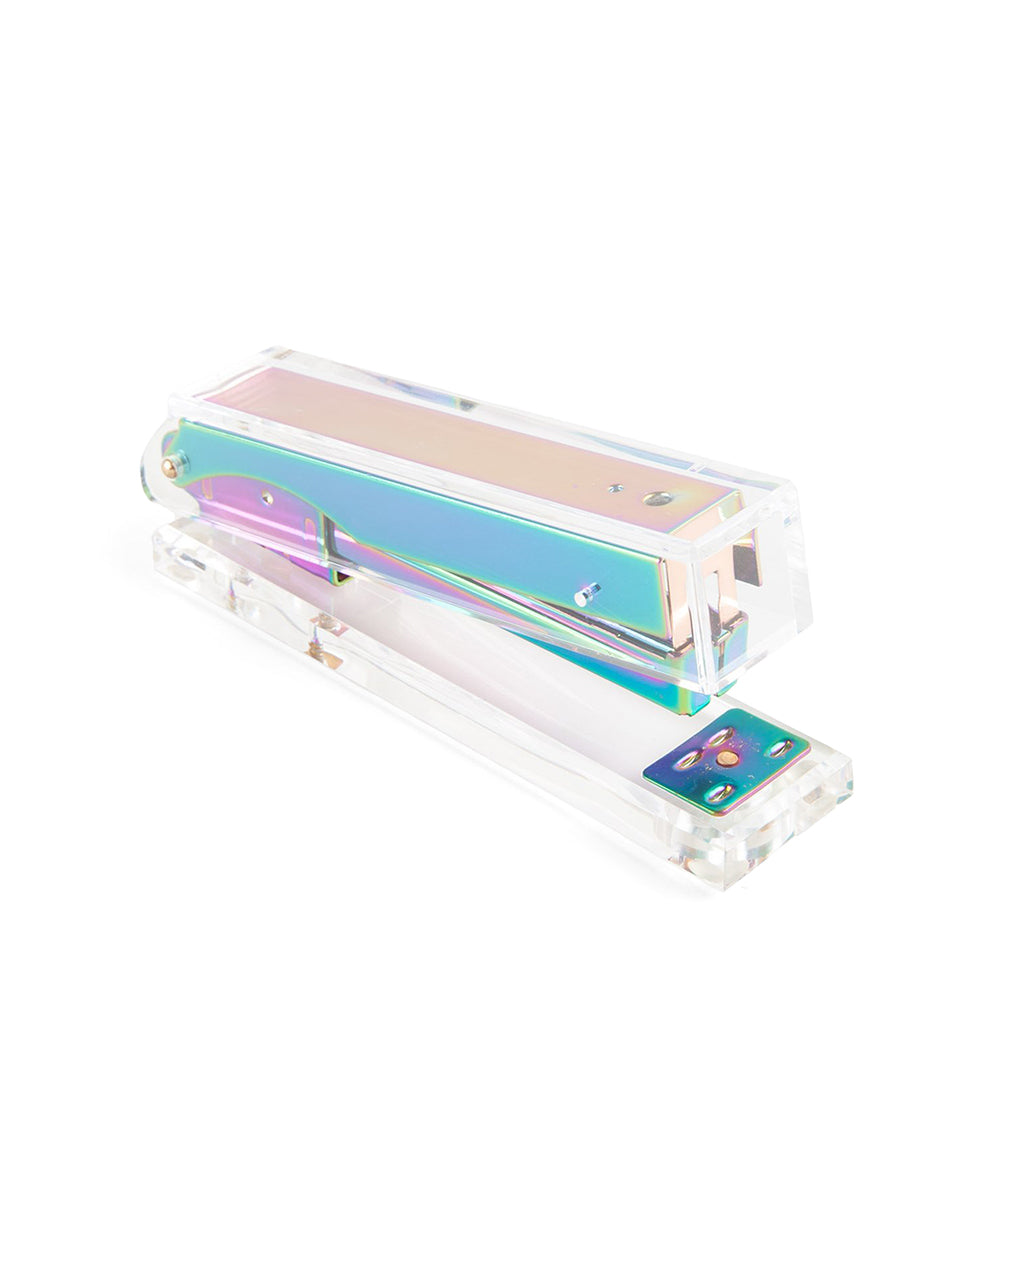 This stapler by Poketo comes in a bright iridescent color.